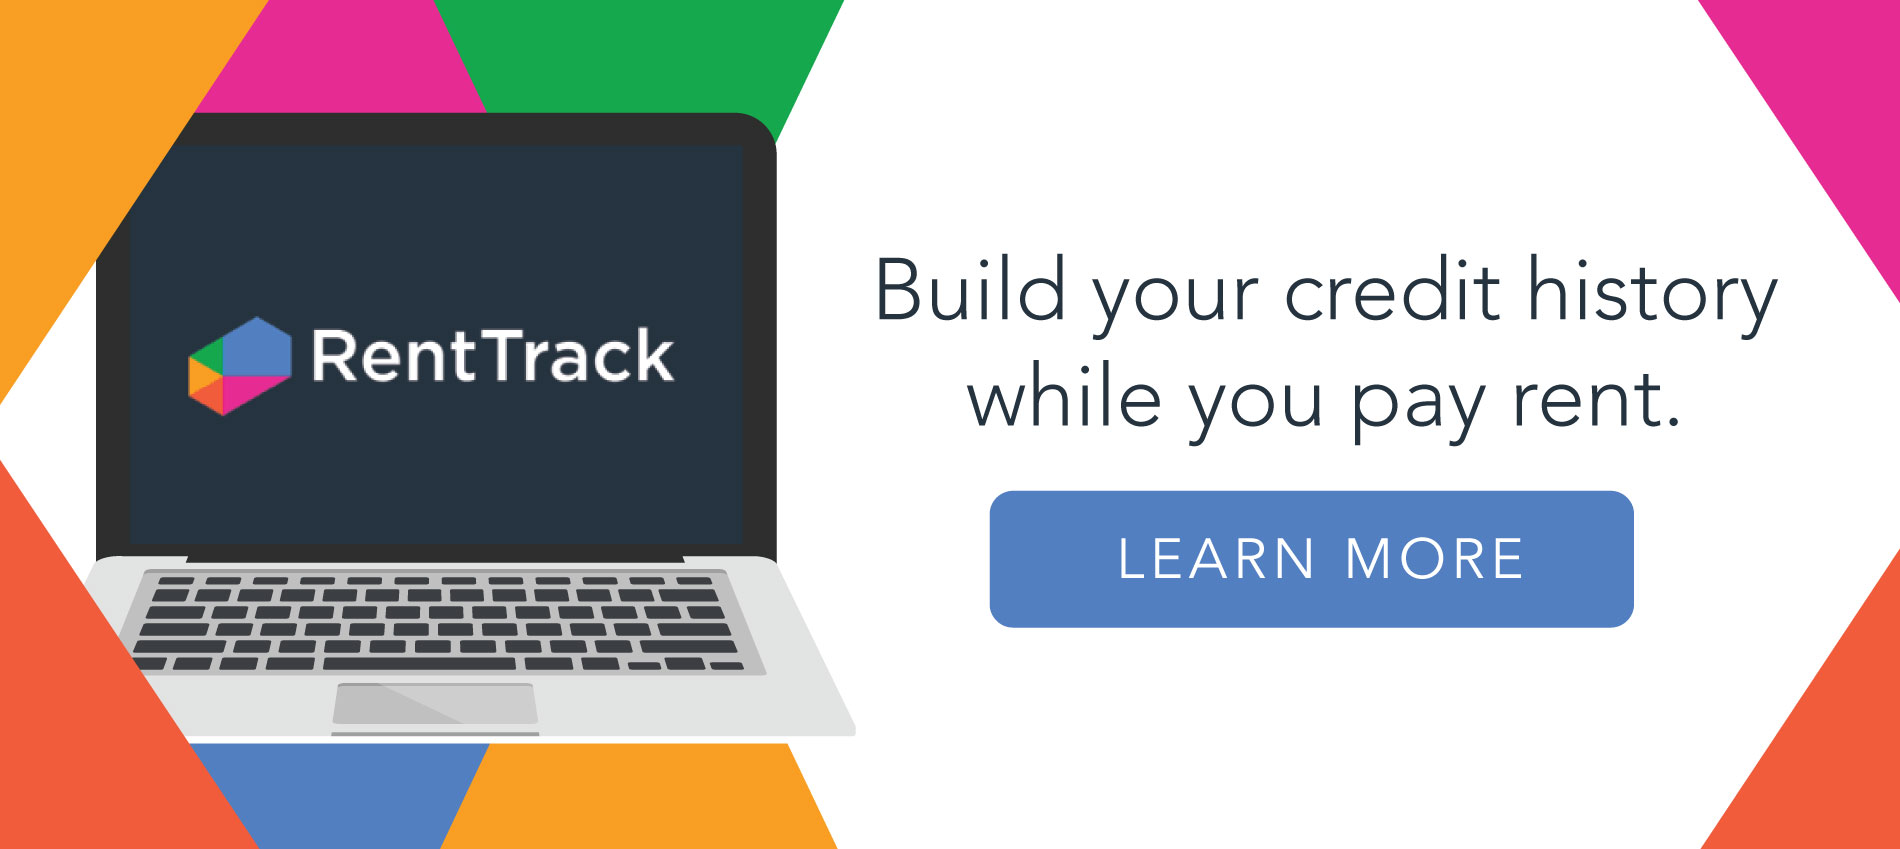 Rent Track - Build credit as you pay your rent.